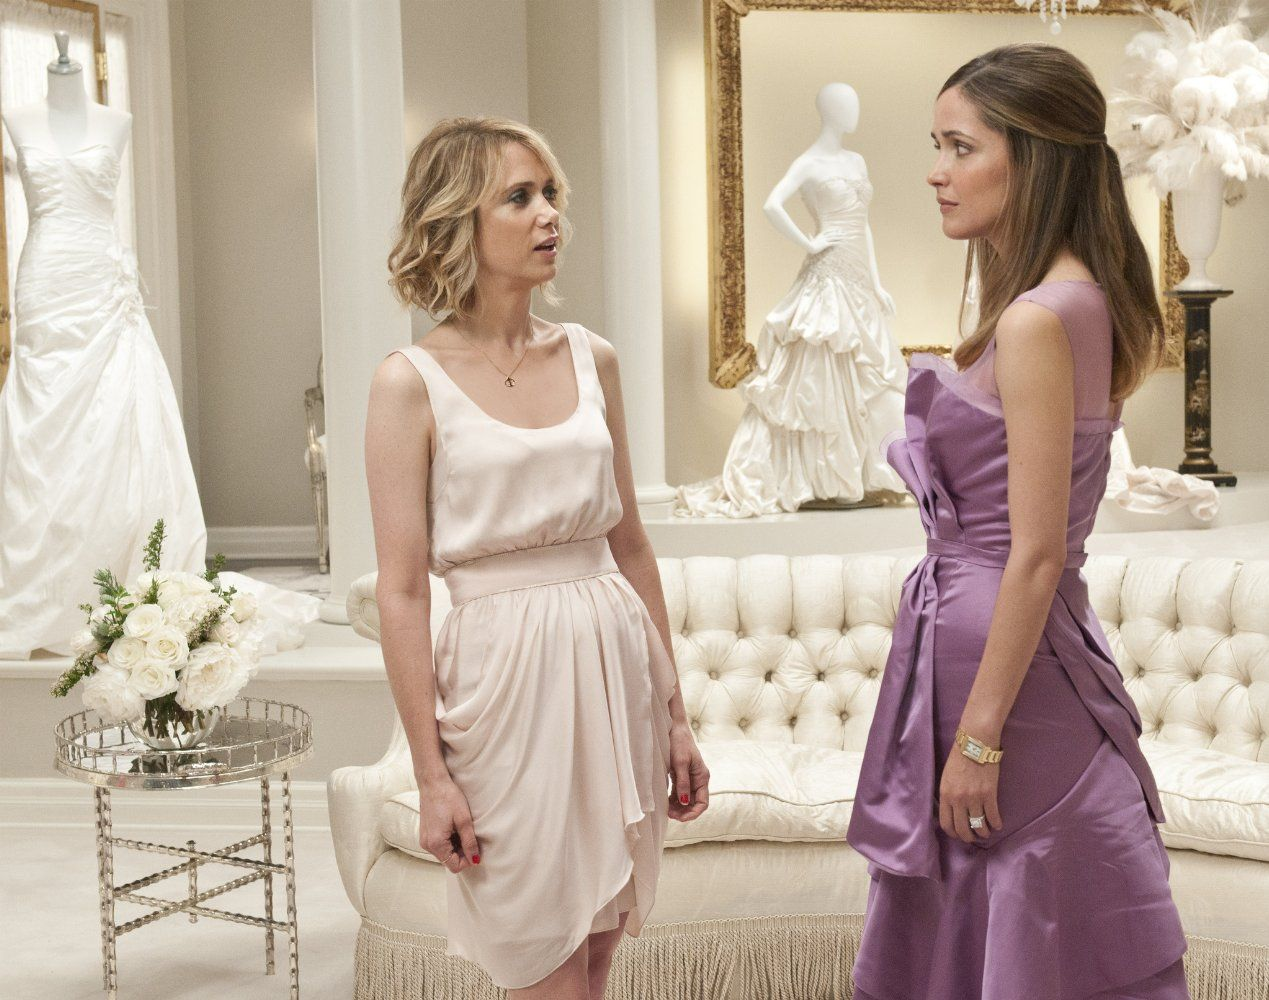 Rose byrne and kristen wiig in bridesmaids 2011 moviestv rose byrne and kristen wiig in bridesmaids 2011 bridesmaids 2011bridesmaid dressesbridesmaids moviewedding ombrellifo Gallery